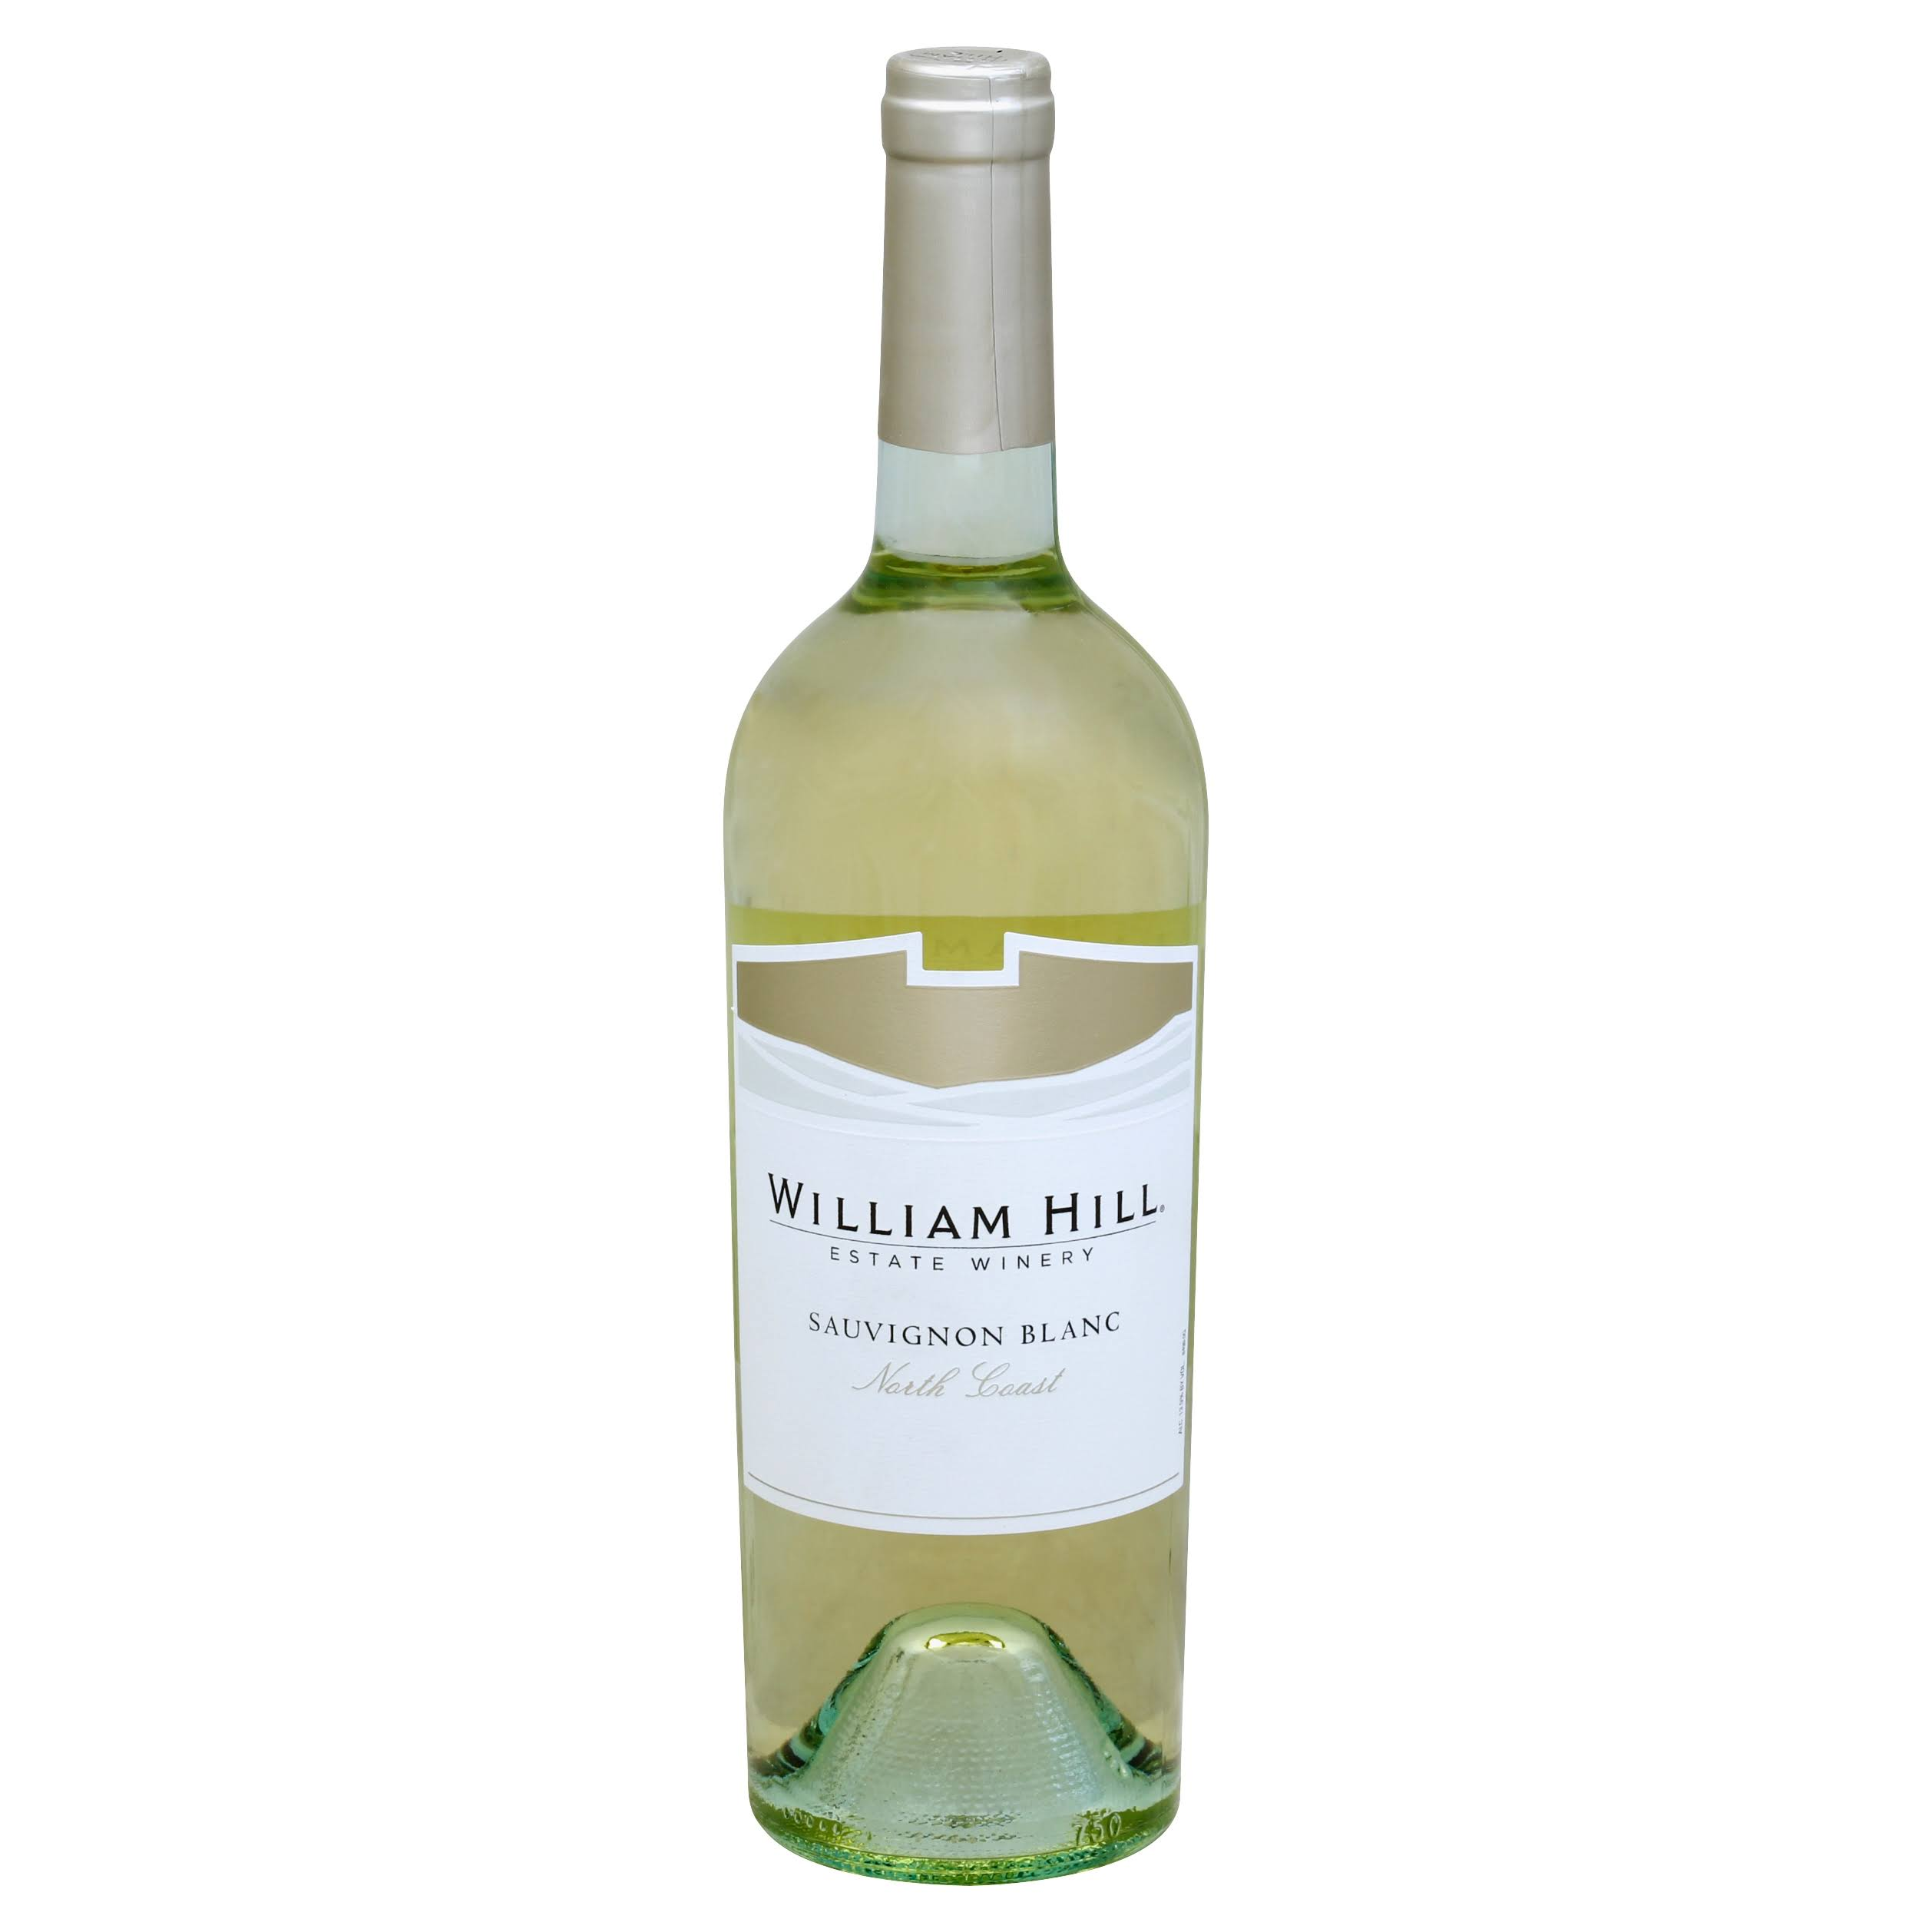 William Hill Sauvignon Blanc Wine - 750ml